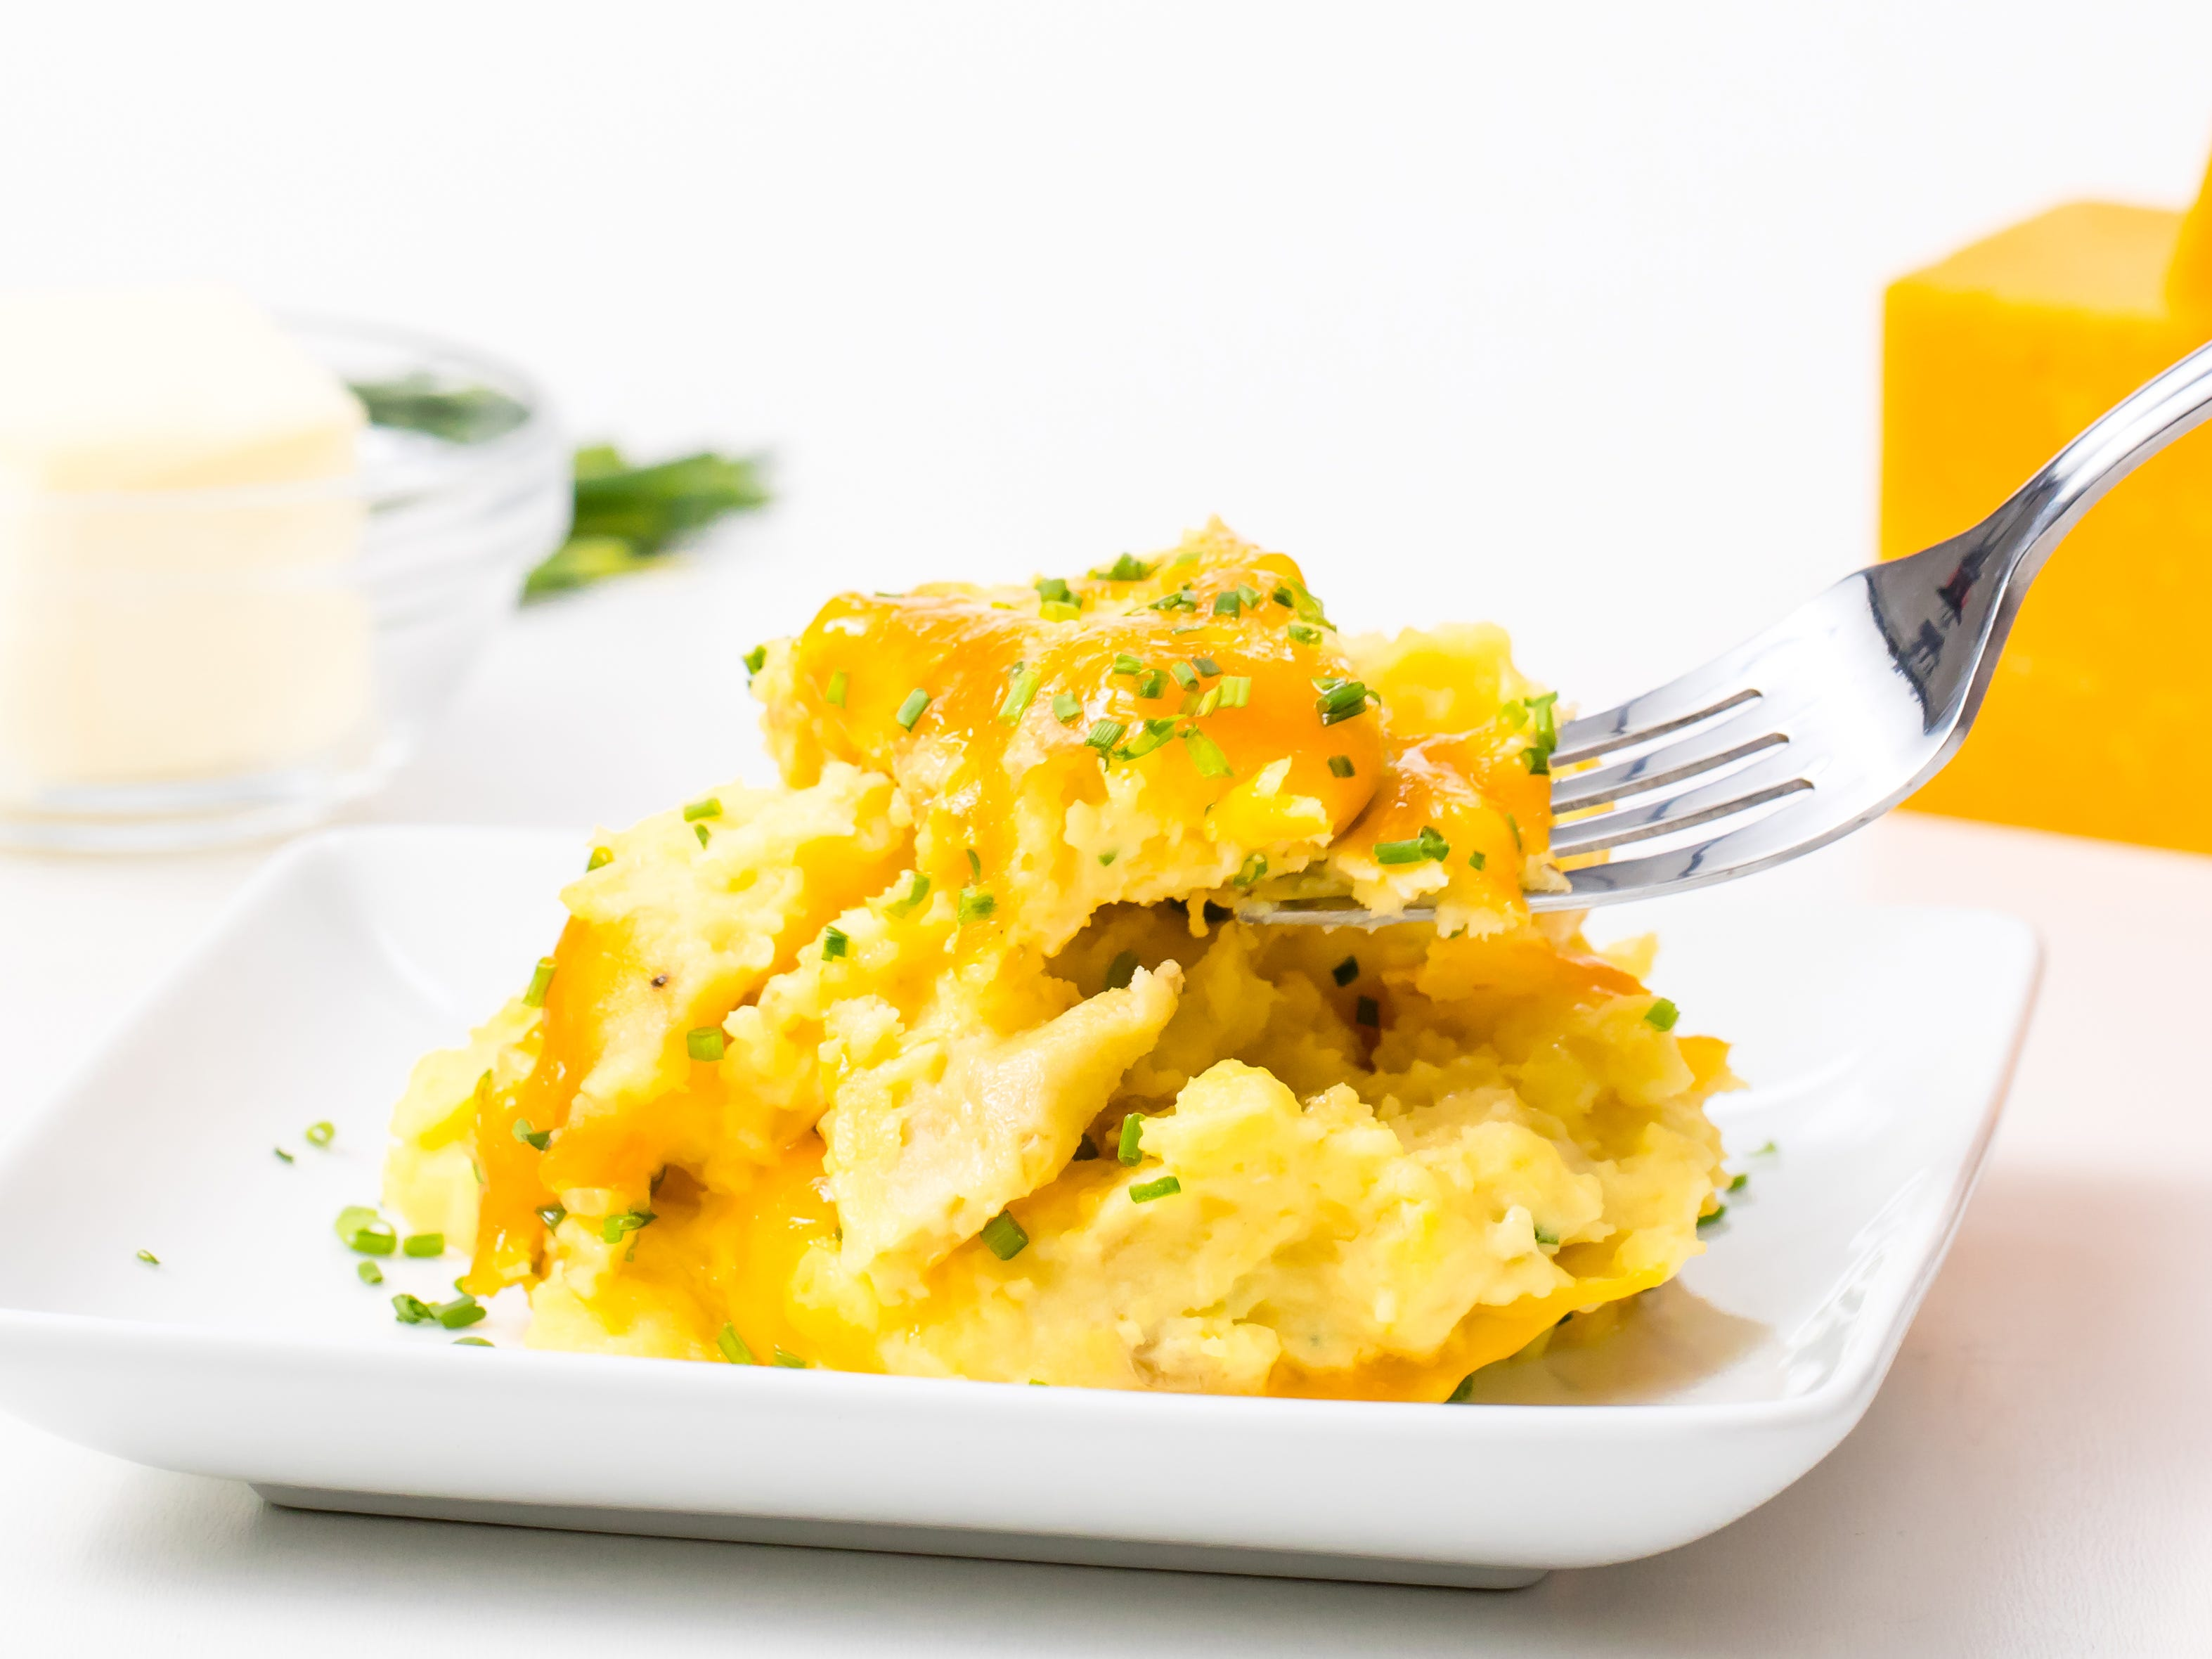 Baked Sour Cream Cheddar Chive Mashed Potatoes